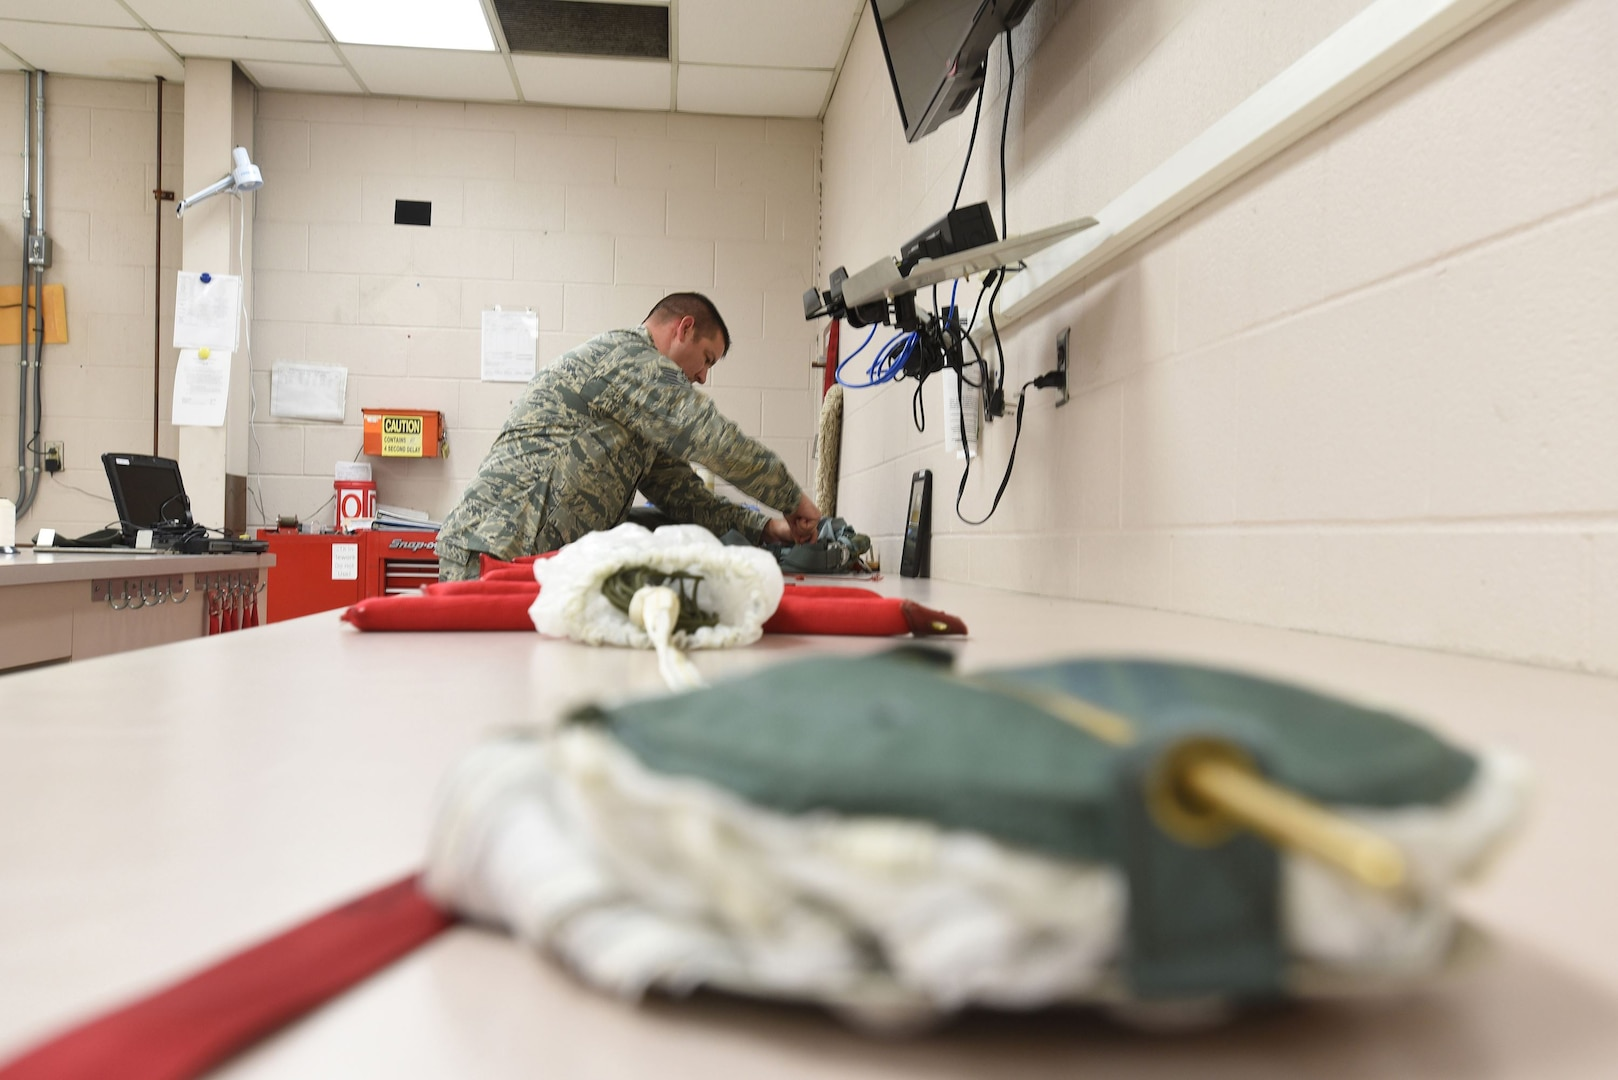 Tech. Sgt. Christopher Brawner, an aircrew flight equipment journeyman with the Kentucky Air Guard's 123rd Operations Support Squadron in Louisville, Ky., repacks a parachute after performing routine maintenance June 9, 2017. The parachute is just one of the many life-saving devices that are put aboard aircraft by members of the aircrew flight equipment shop after careful inspection